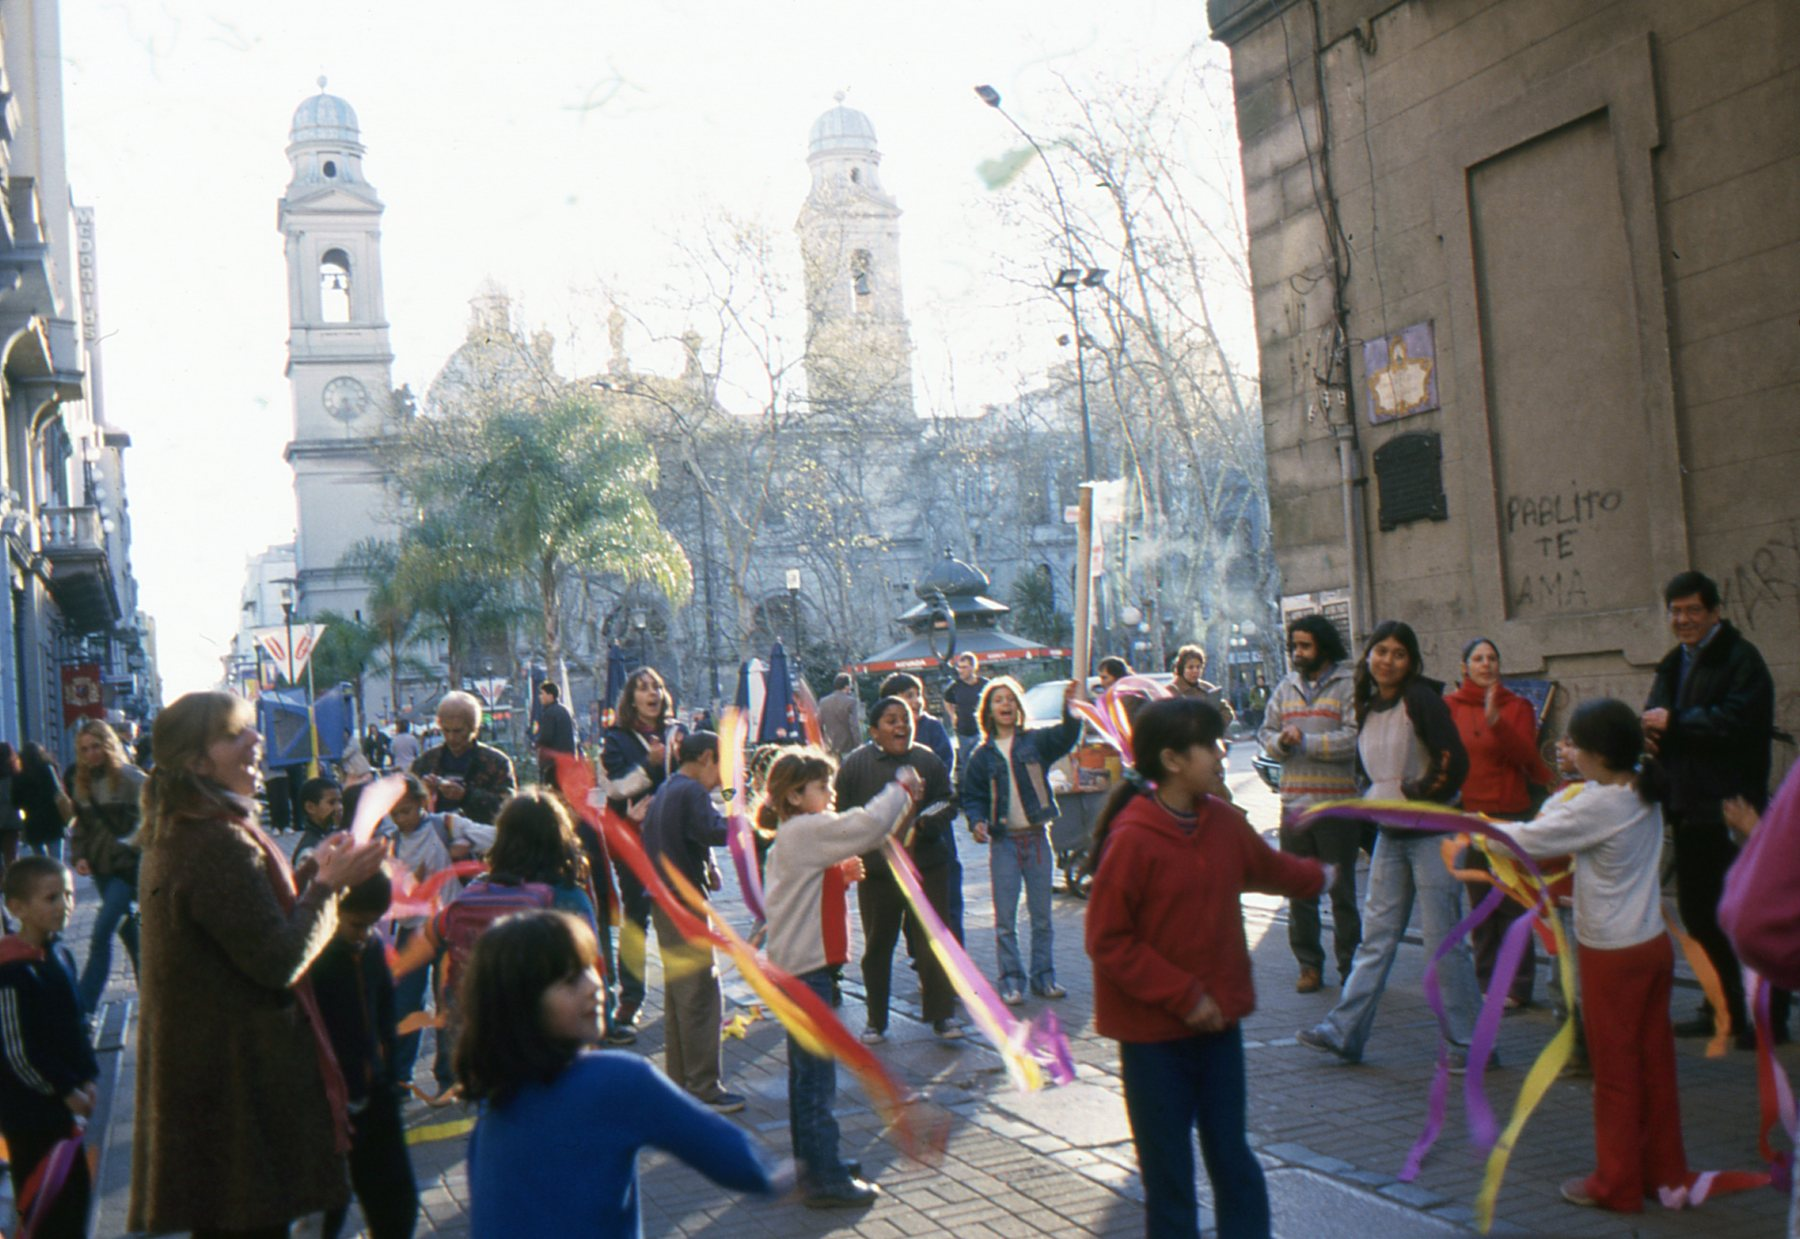 Just off Plaza de la Constitucion, students let loose.